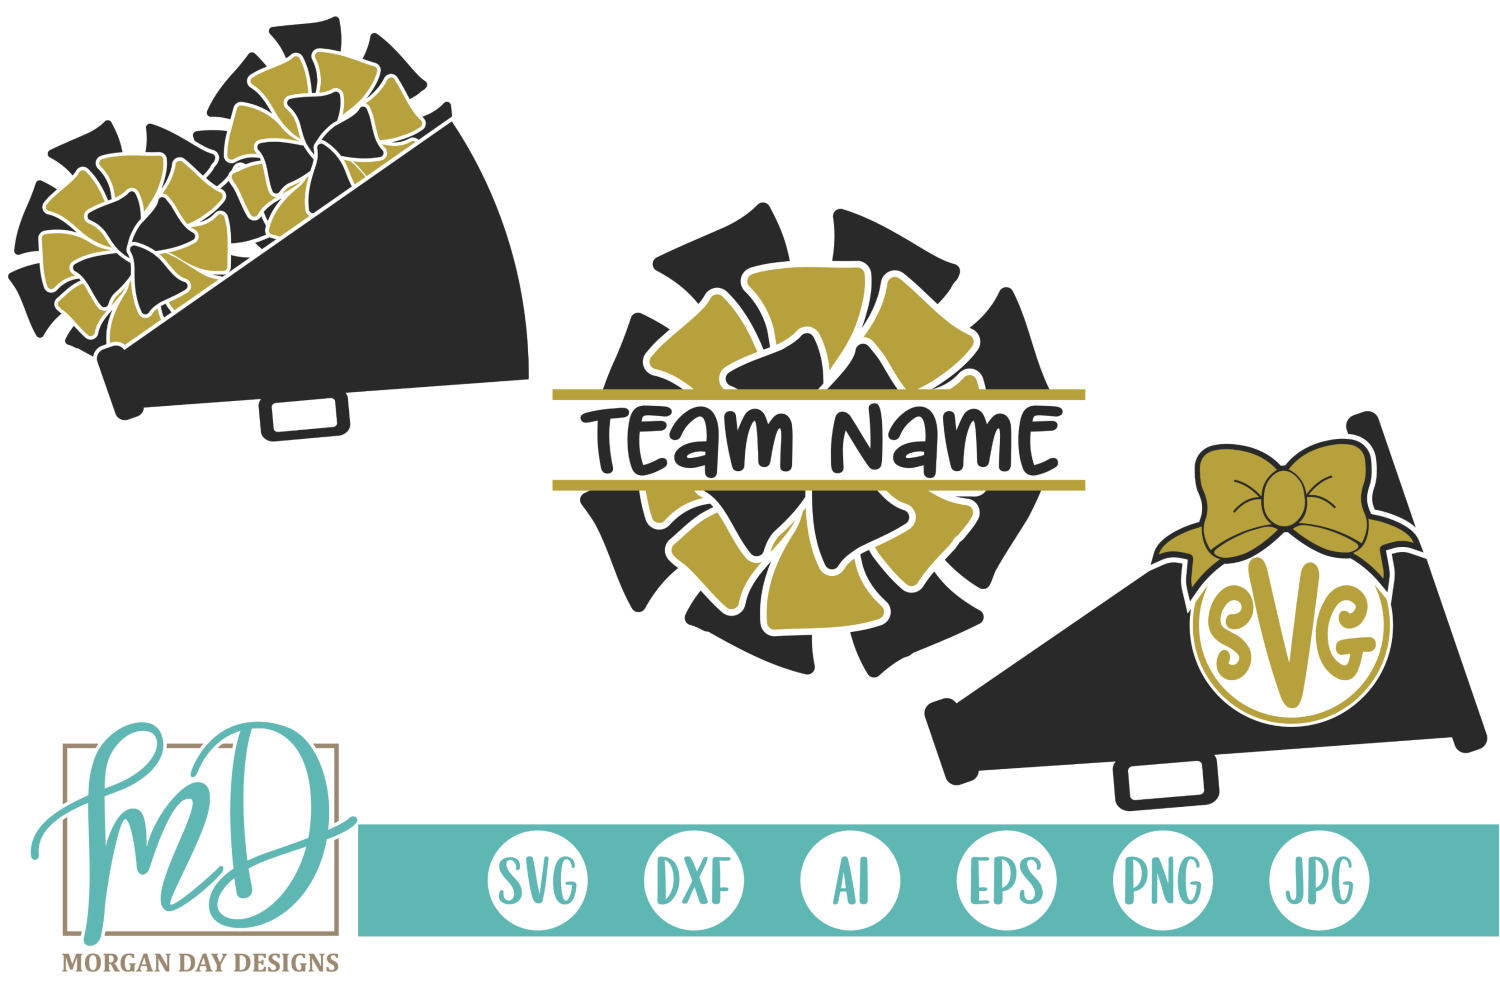 Download Free Cheer Monogram Graphic By Morgan Day Designs Creative Fabrica for Cricut Explore, Silhouette and other cutting machines.